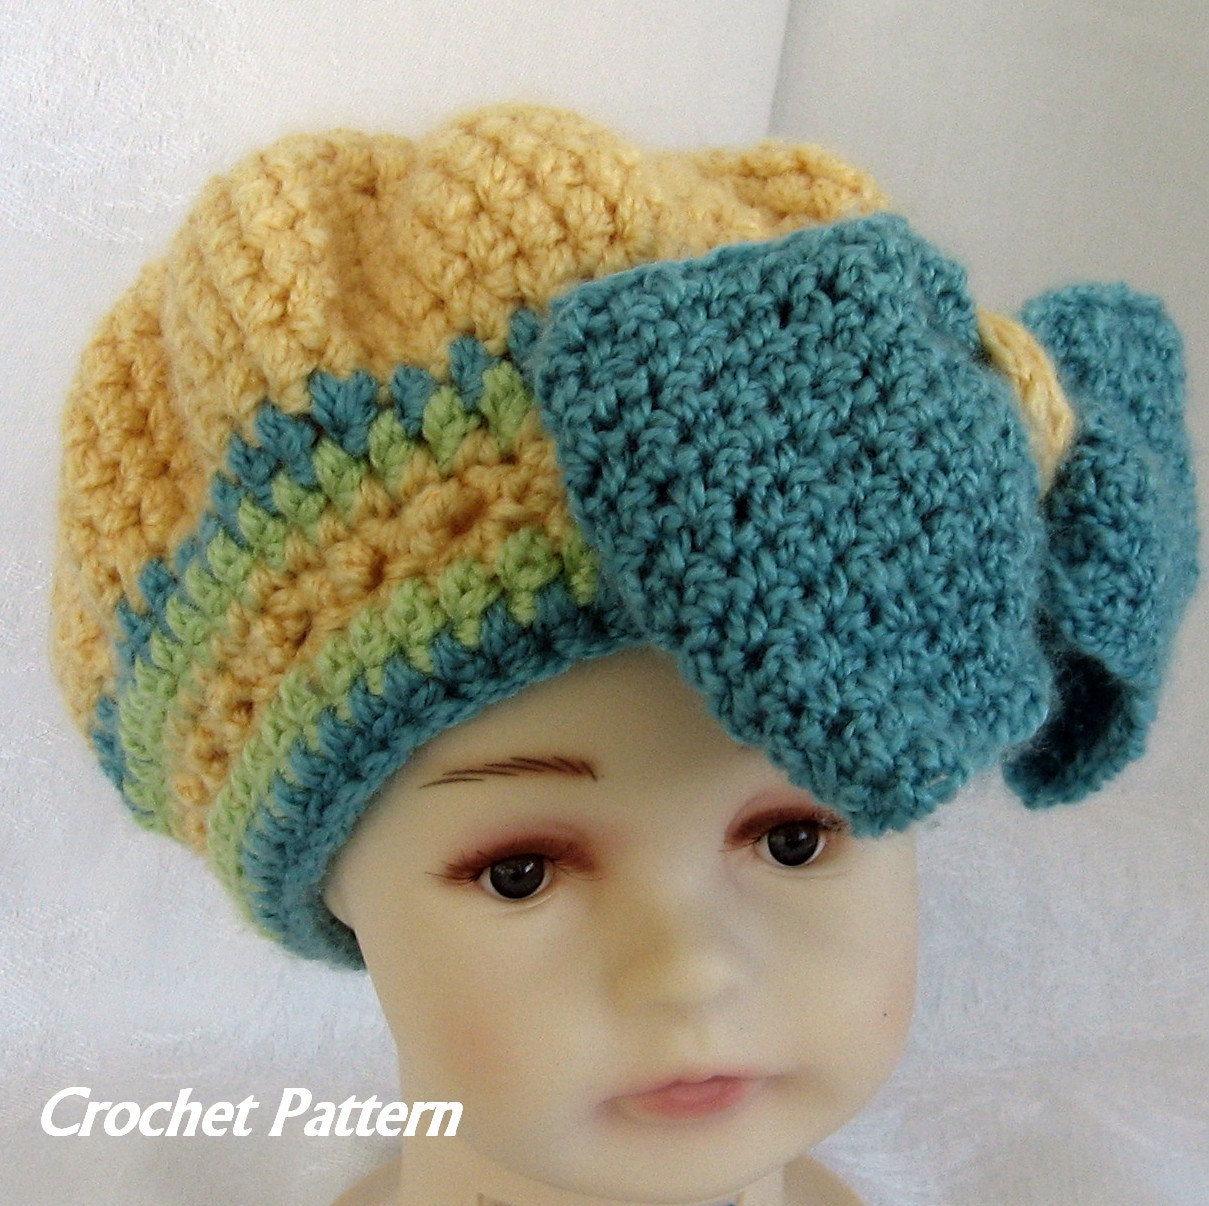 Crochet Baby Hat Pattern With Bow : Crochet Hat Pattern Baby Girls Beret With Bow Trim Instant